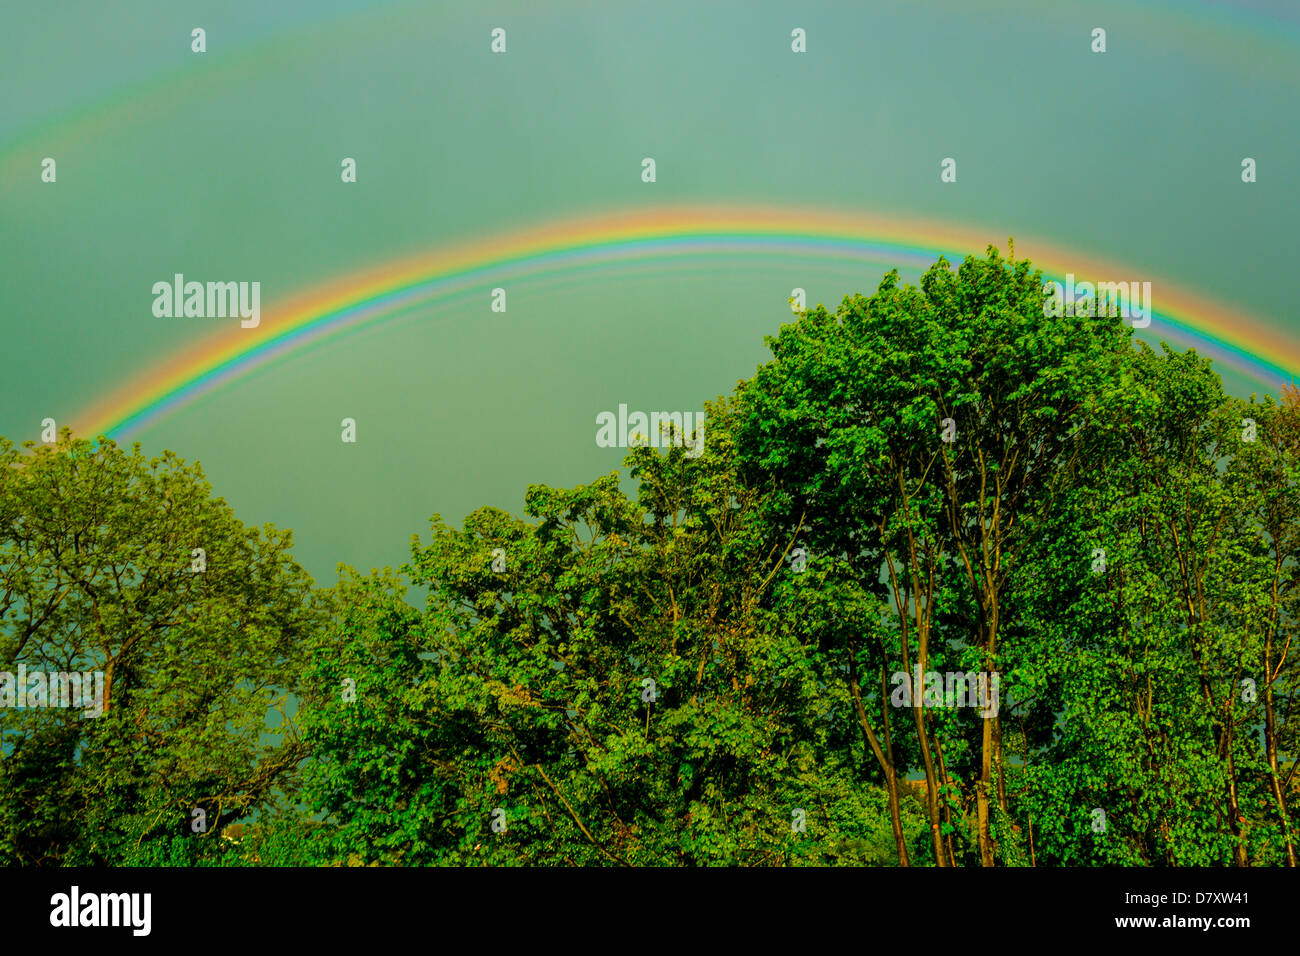 A Rainbow with faint Twin Surrey England - Stock Image